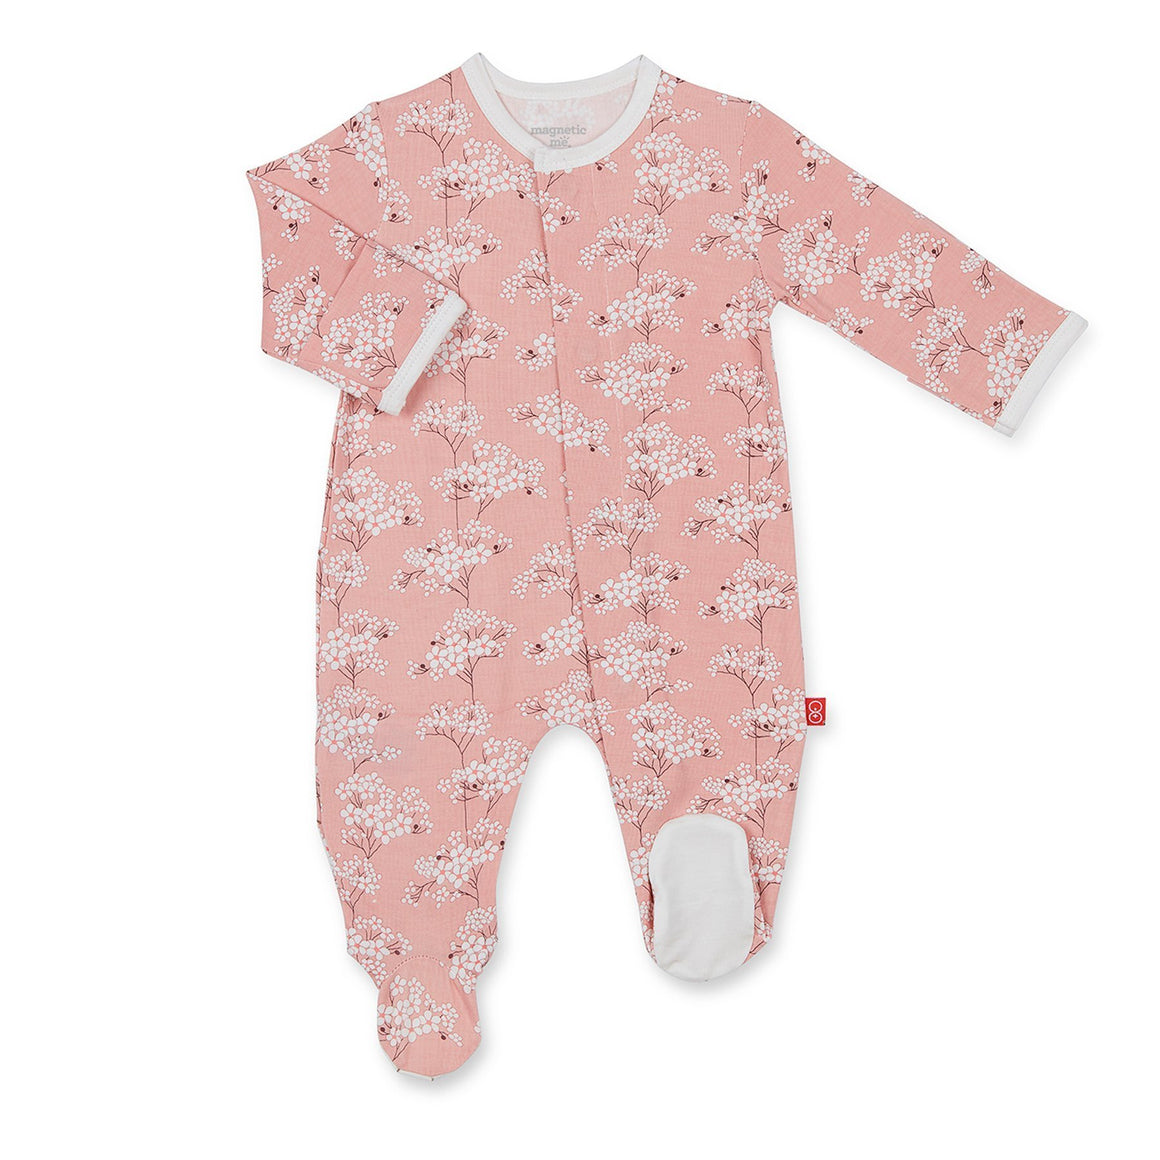 Magnificent Baby Infant Apparel 0-3M / CherryBl Magnificent Baby Cherry Blossom Infant Footie